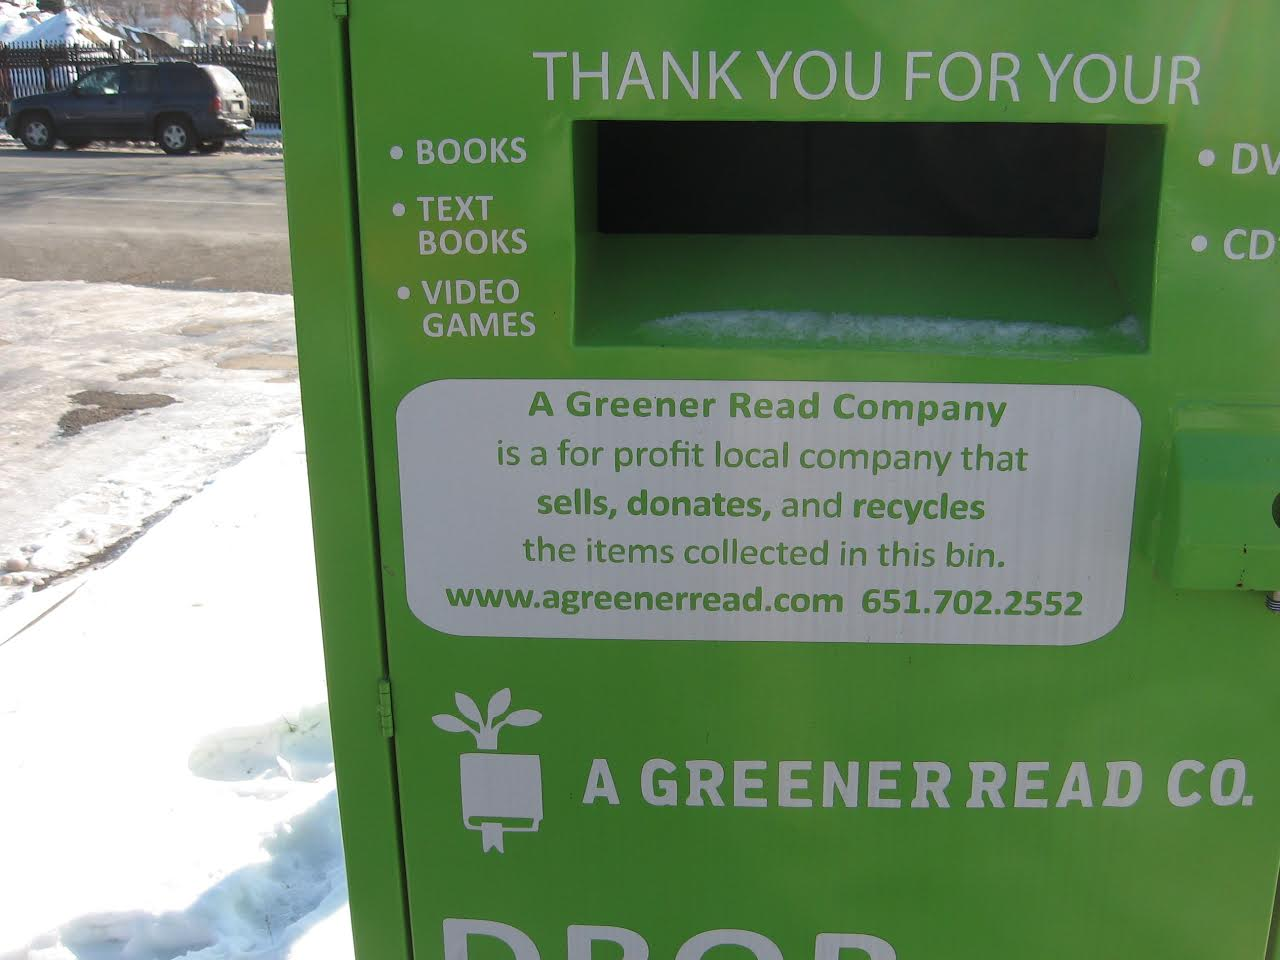 (Photo credit: Forum staff) These green bins, soliciting donations of books and video games, look similar to bins set out by nonprofit organizations seeking donations for people in need.